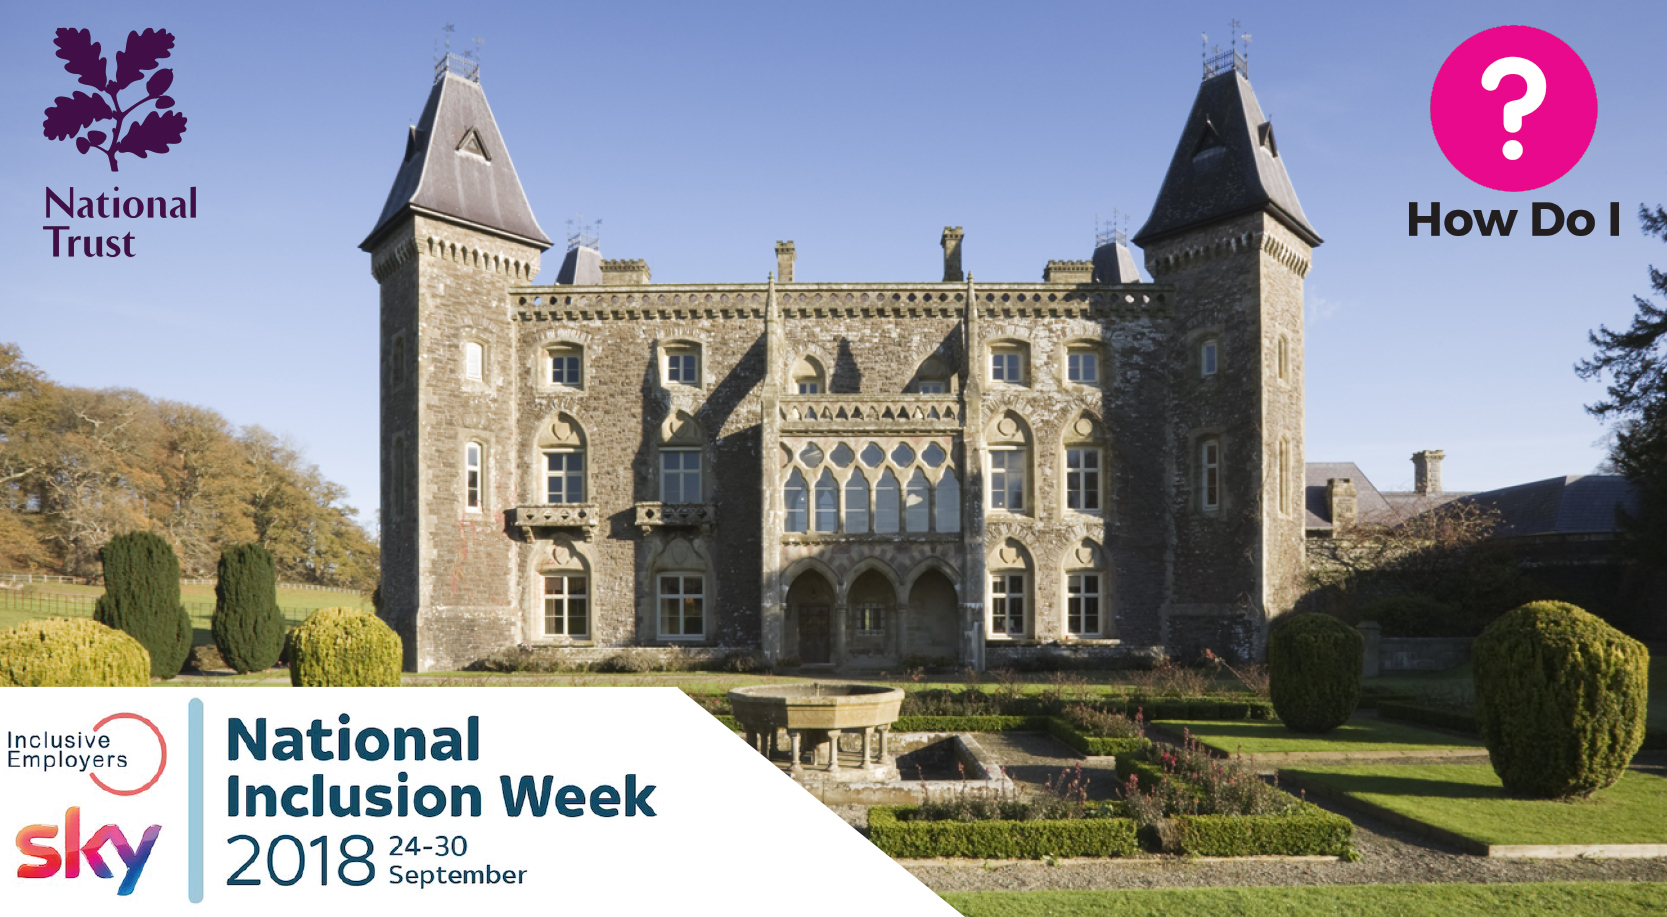 The header includes the National Trust and How Do I? logo with an image of Newton House (a large old building with a big garden and a fountain) in the background. The National Inclusion Week logo is at the bottom with the dates for the campaign - 24-30 September.